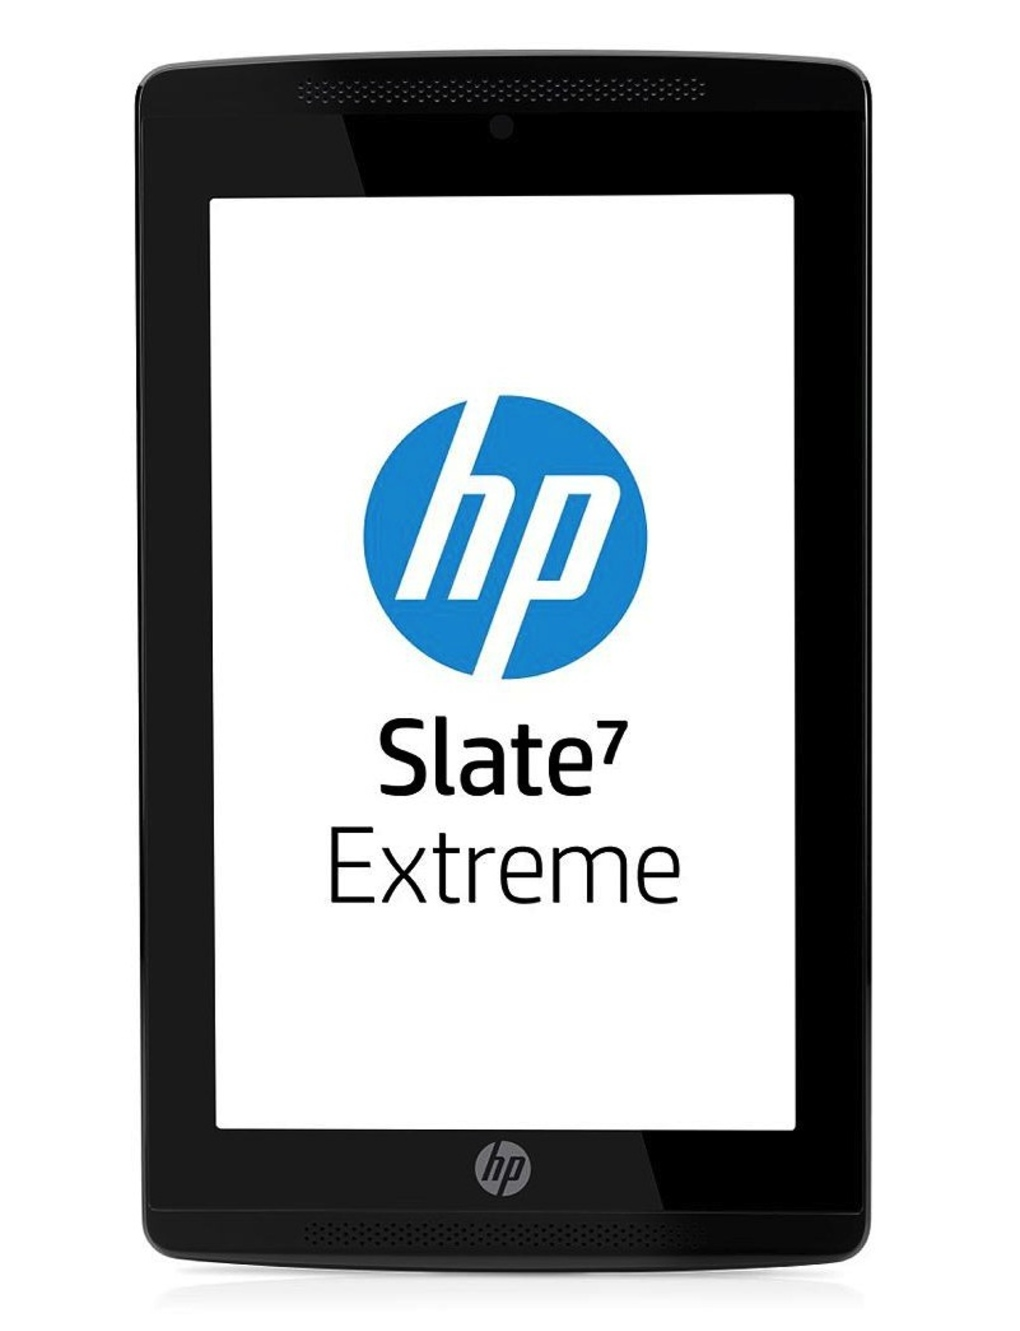 HP_Slate_7_Extreme_front2_verge_super_wide.